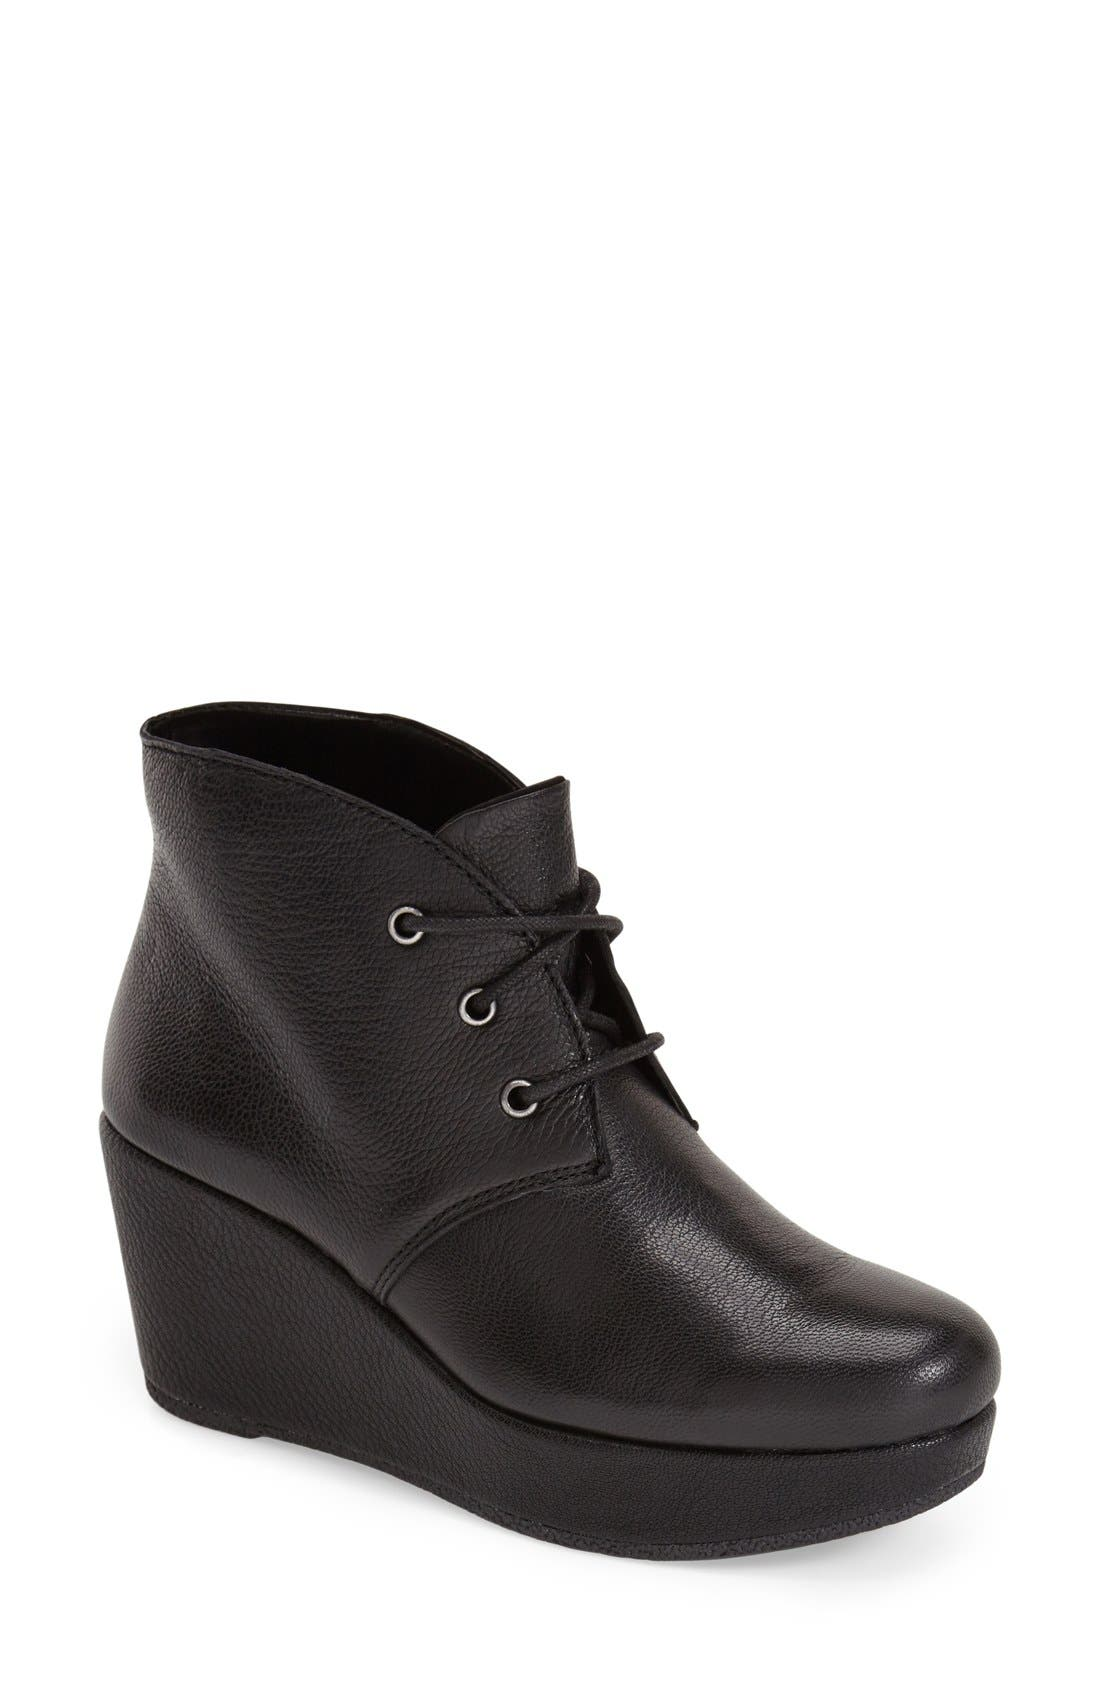 Alternate Image 1 Selected - BCBGeneration 'Kenan' Platform Wedge Boot (Women)